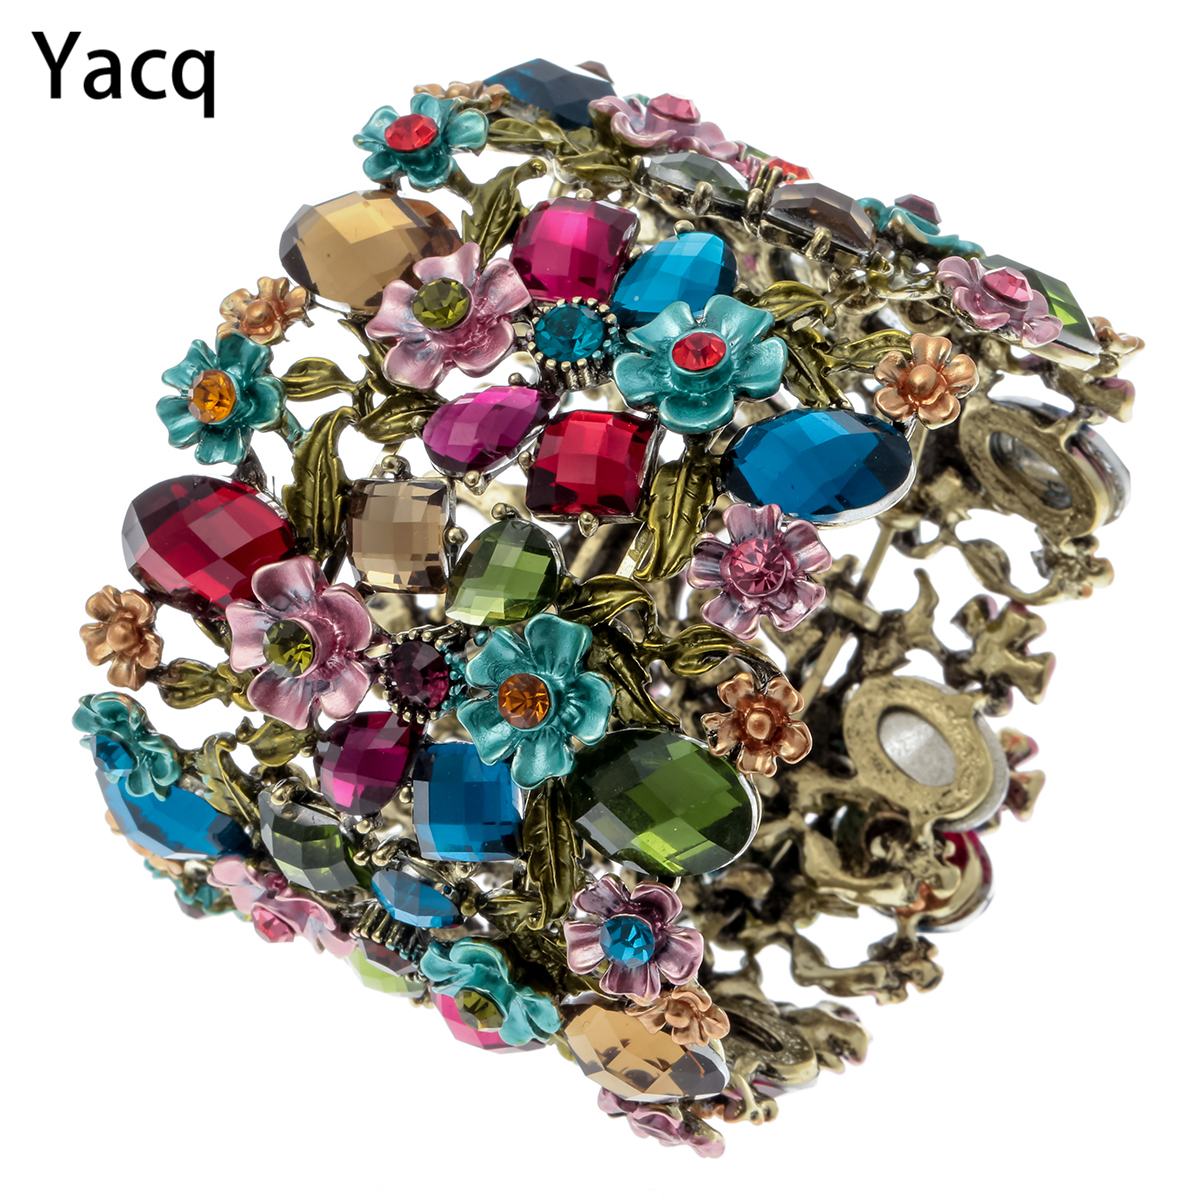 Yacq Flower Stretch Wide Bracelet Women Summer Cute Cuff Fashion Wedding Bridal Jewelry Gifts F28 Gold Silver Color Dropshipping